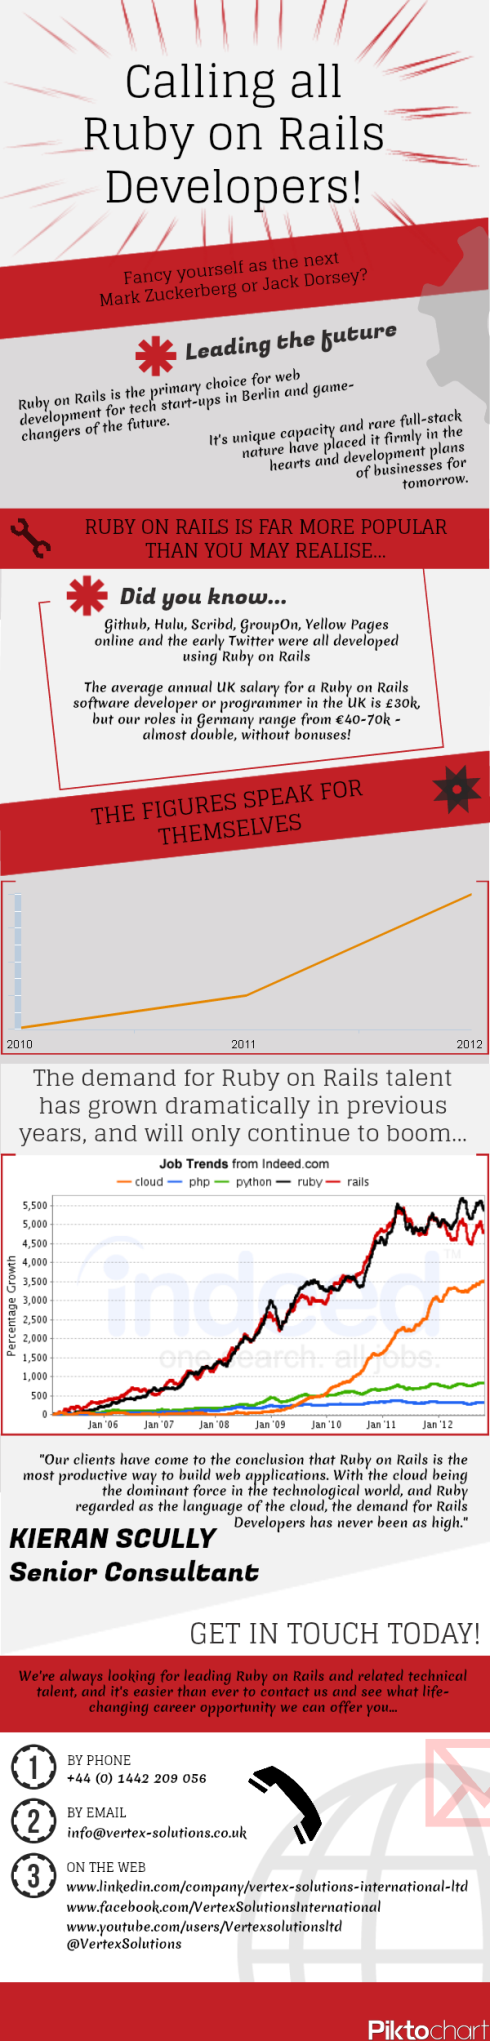 Infogram on Ruby on Rails professionals.